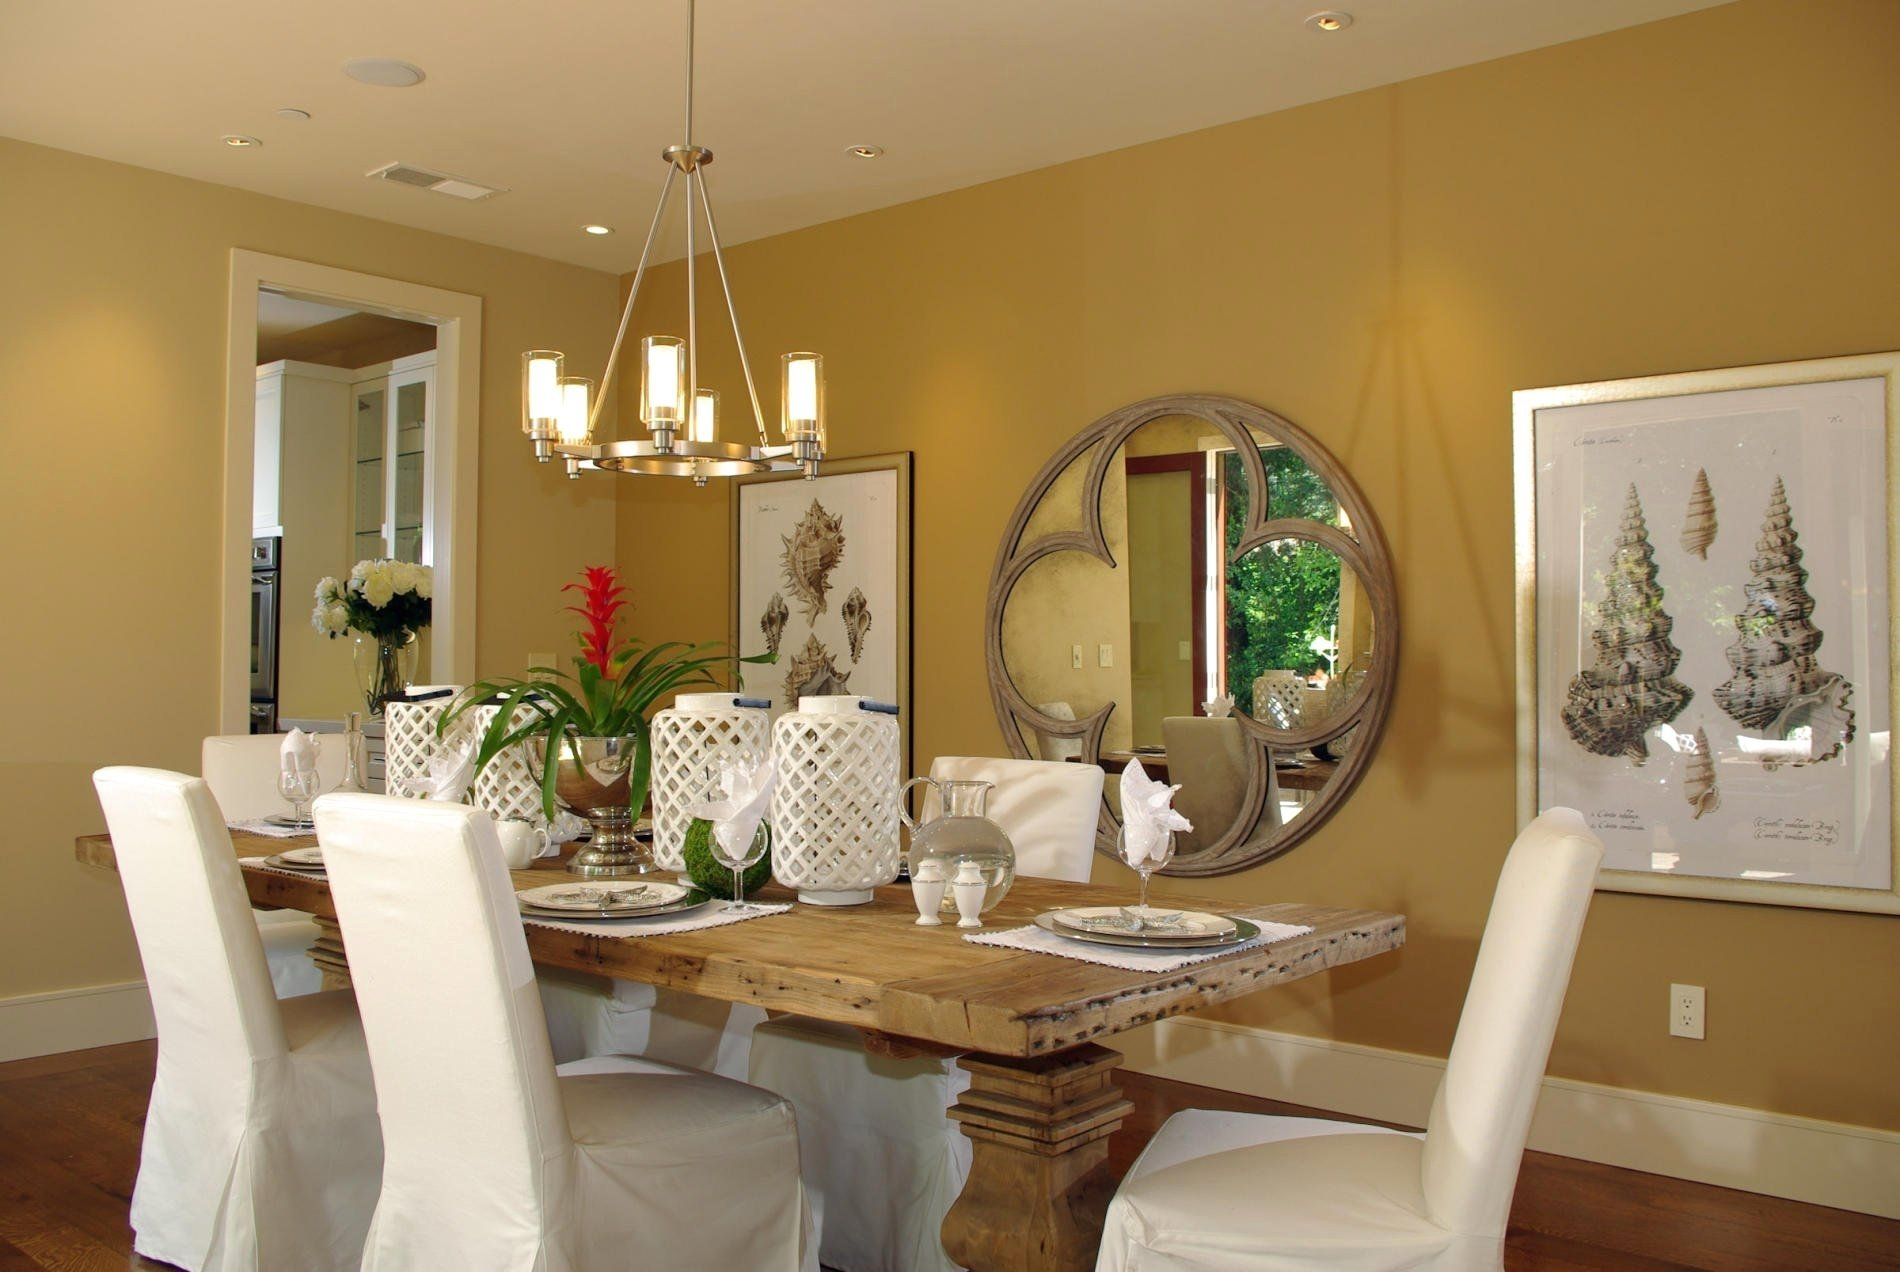 10 Pretty Dining Room Table Centerpieces Ideas dining room centerpiece ideas for dining room table modern for 1 2020